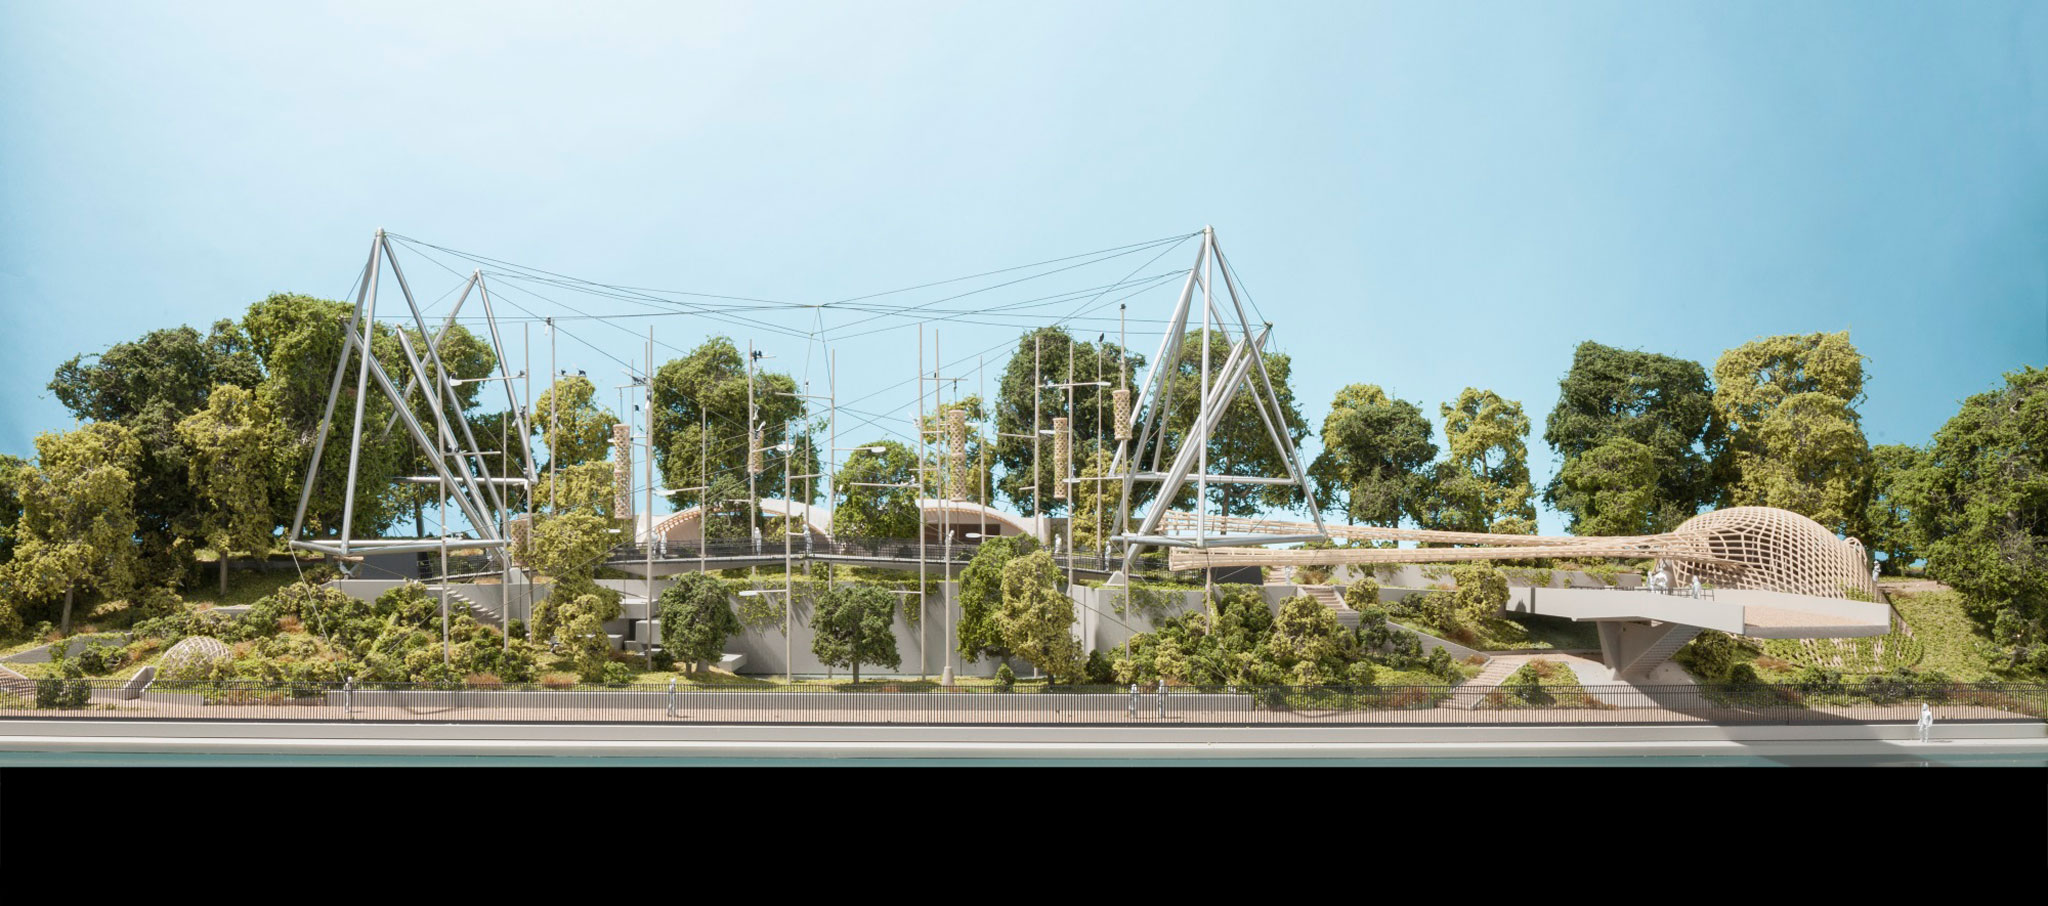 New ZSL London Zoo's Snowdon Aviary by Foster + Partners. Image by Tom Miller